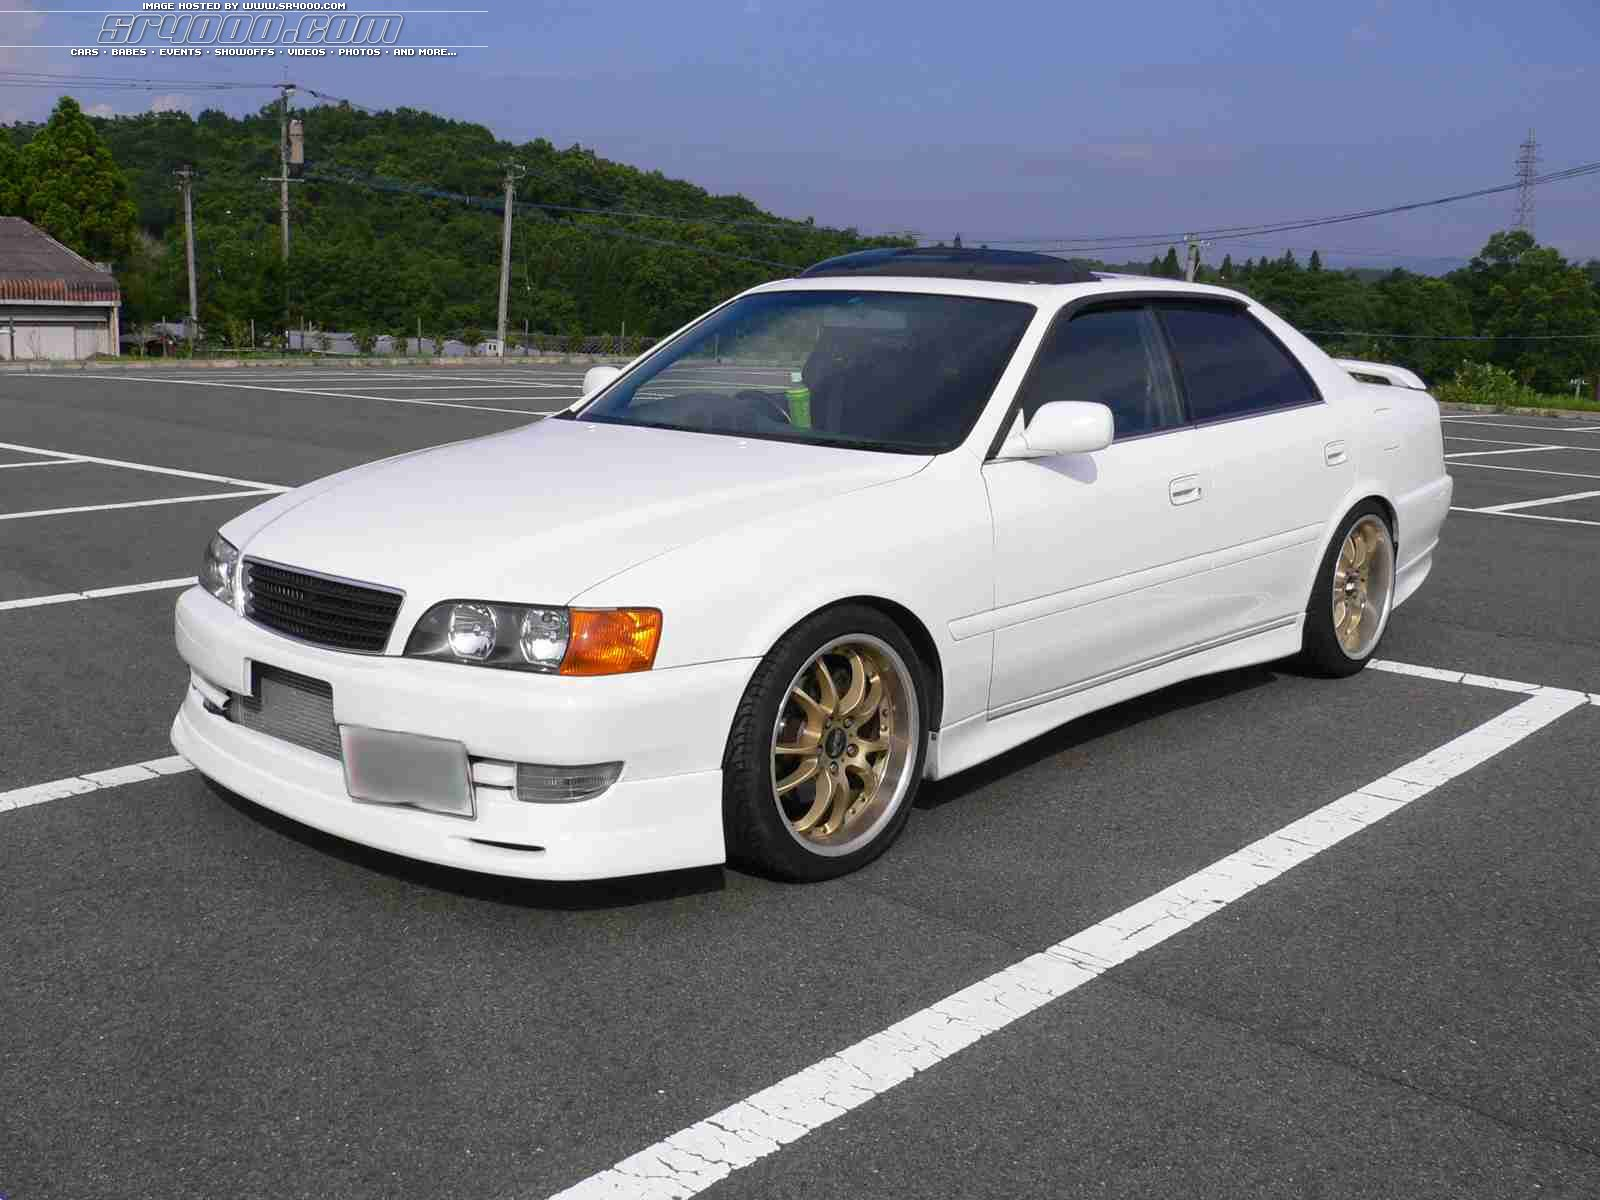 Toyota Chaser: 02 фото